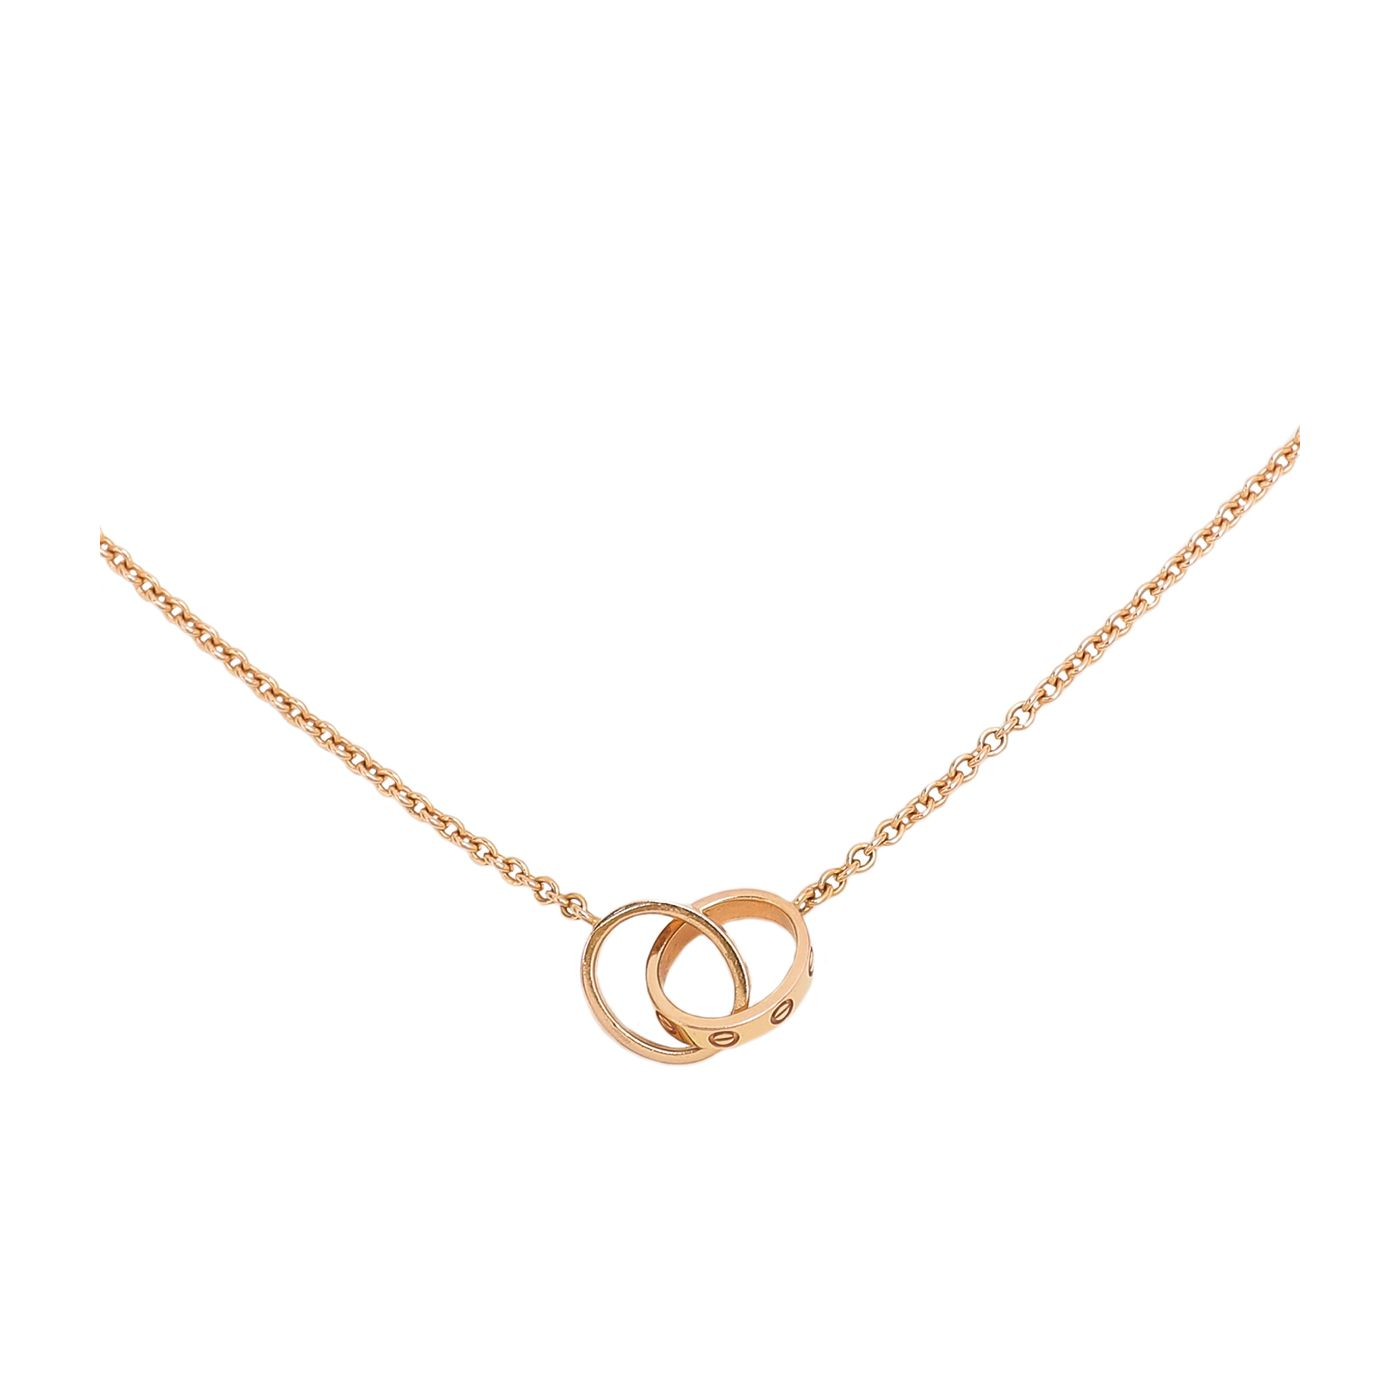 Cartier 18K Pink Gold Love Interlocking Hoops Necklace